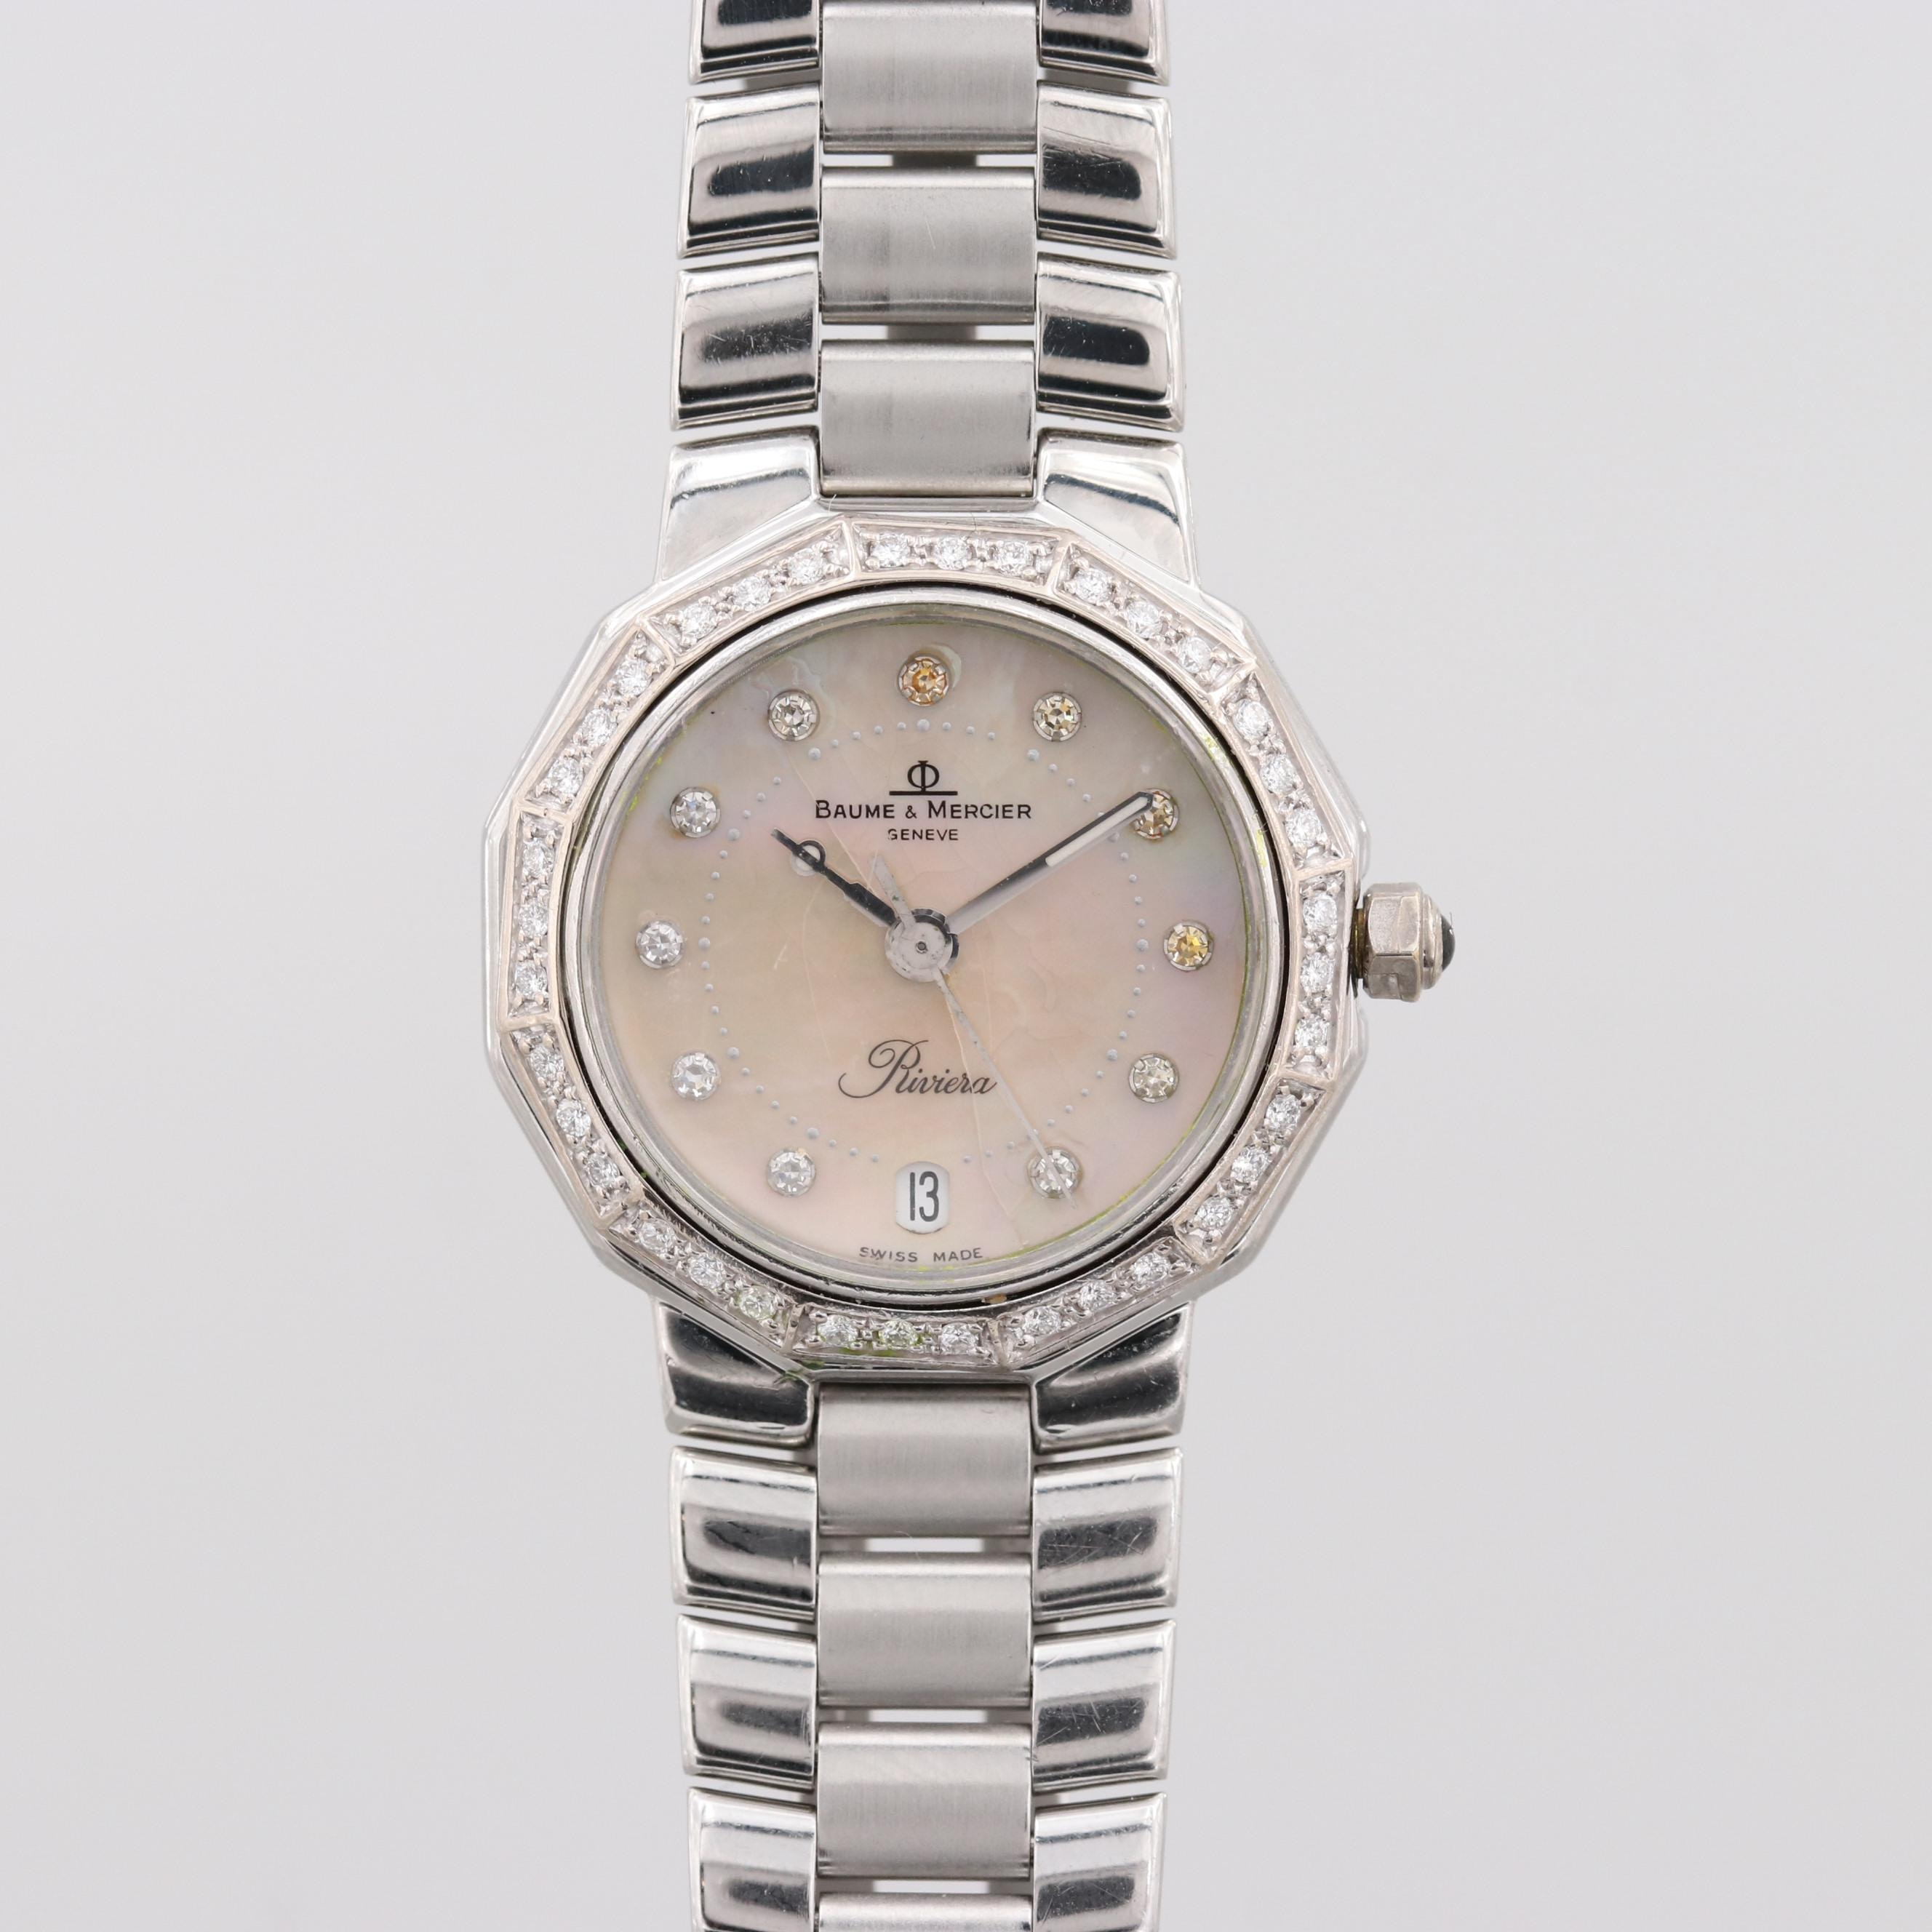 Baume & Mercier Riviera Quartz Wristwatch With Diamond Dial and Bezel